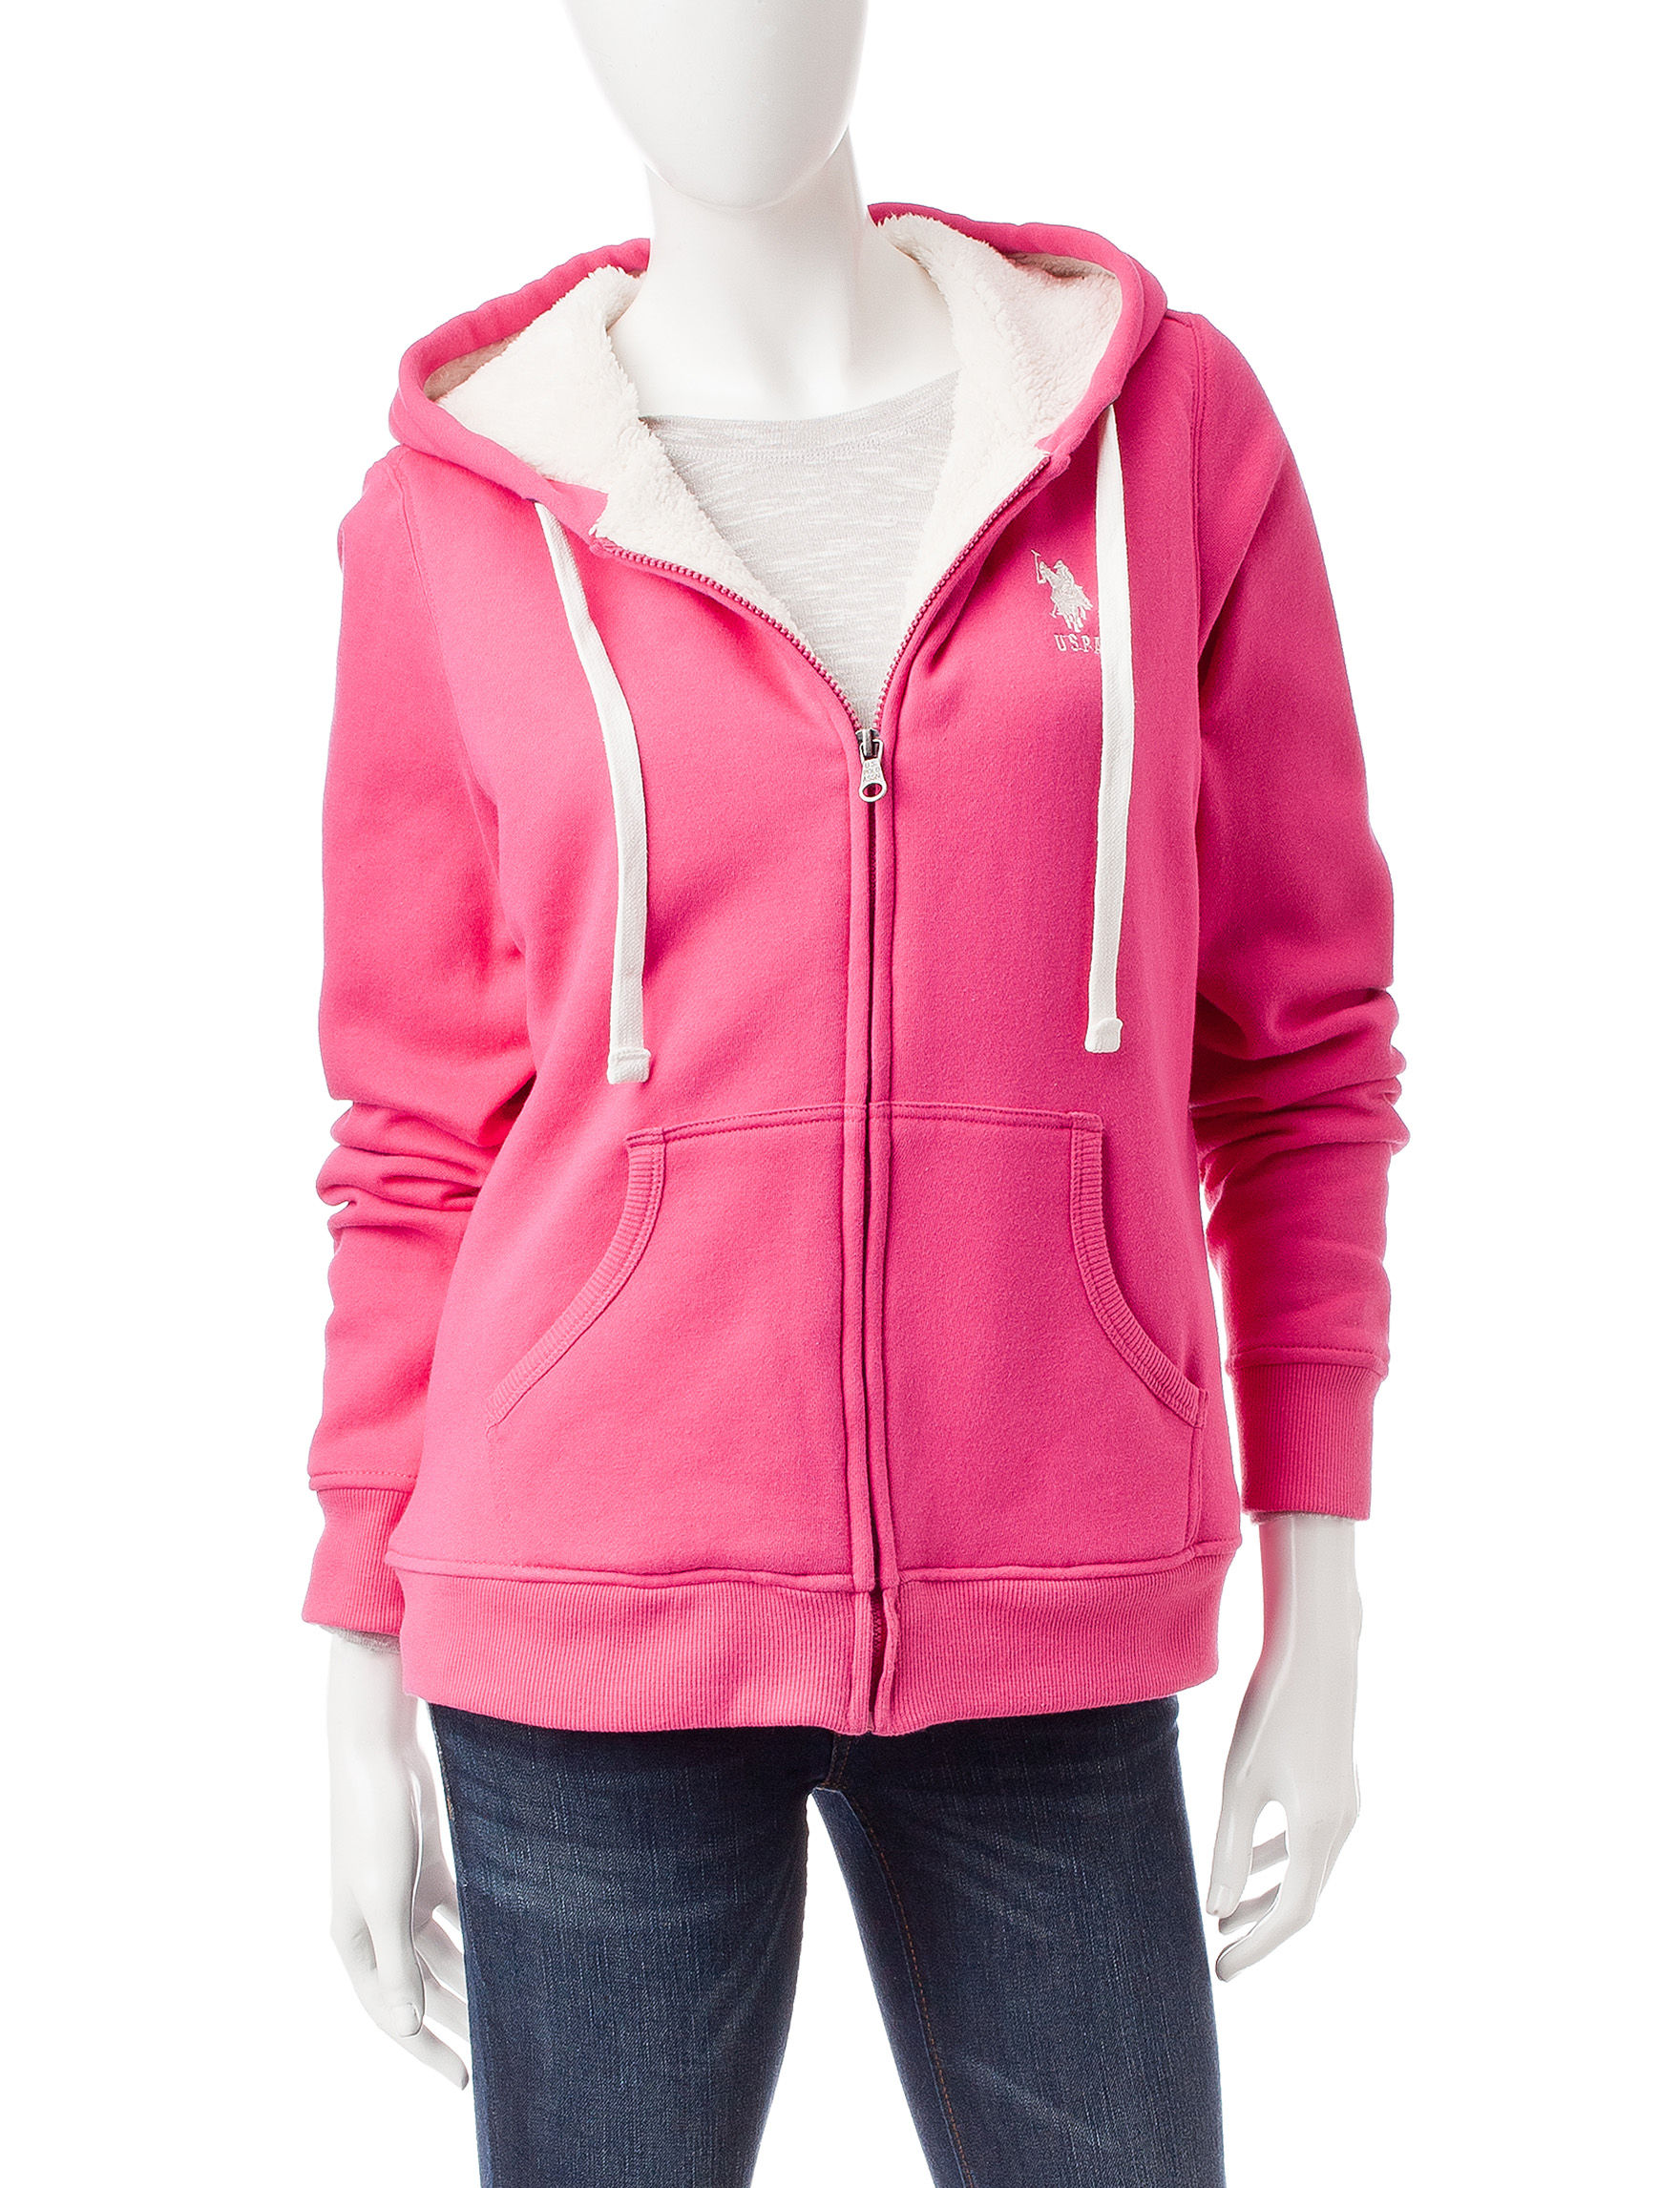 U.S. Polo Assn. Pink Fleece & Soft Shell Jackets